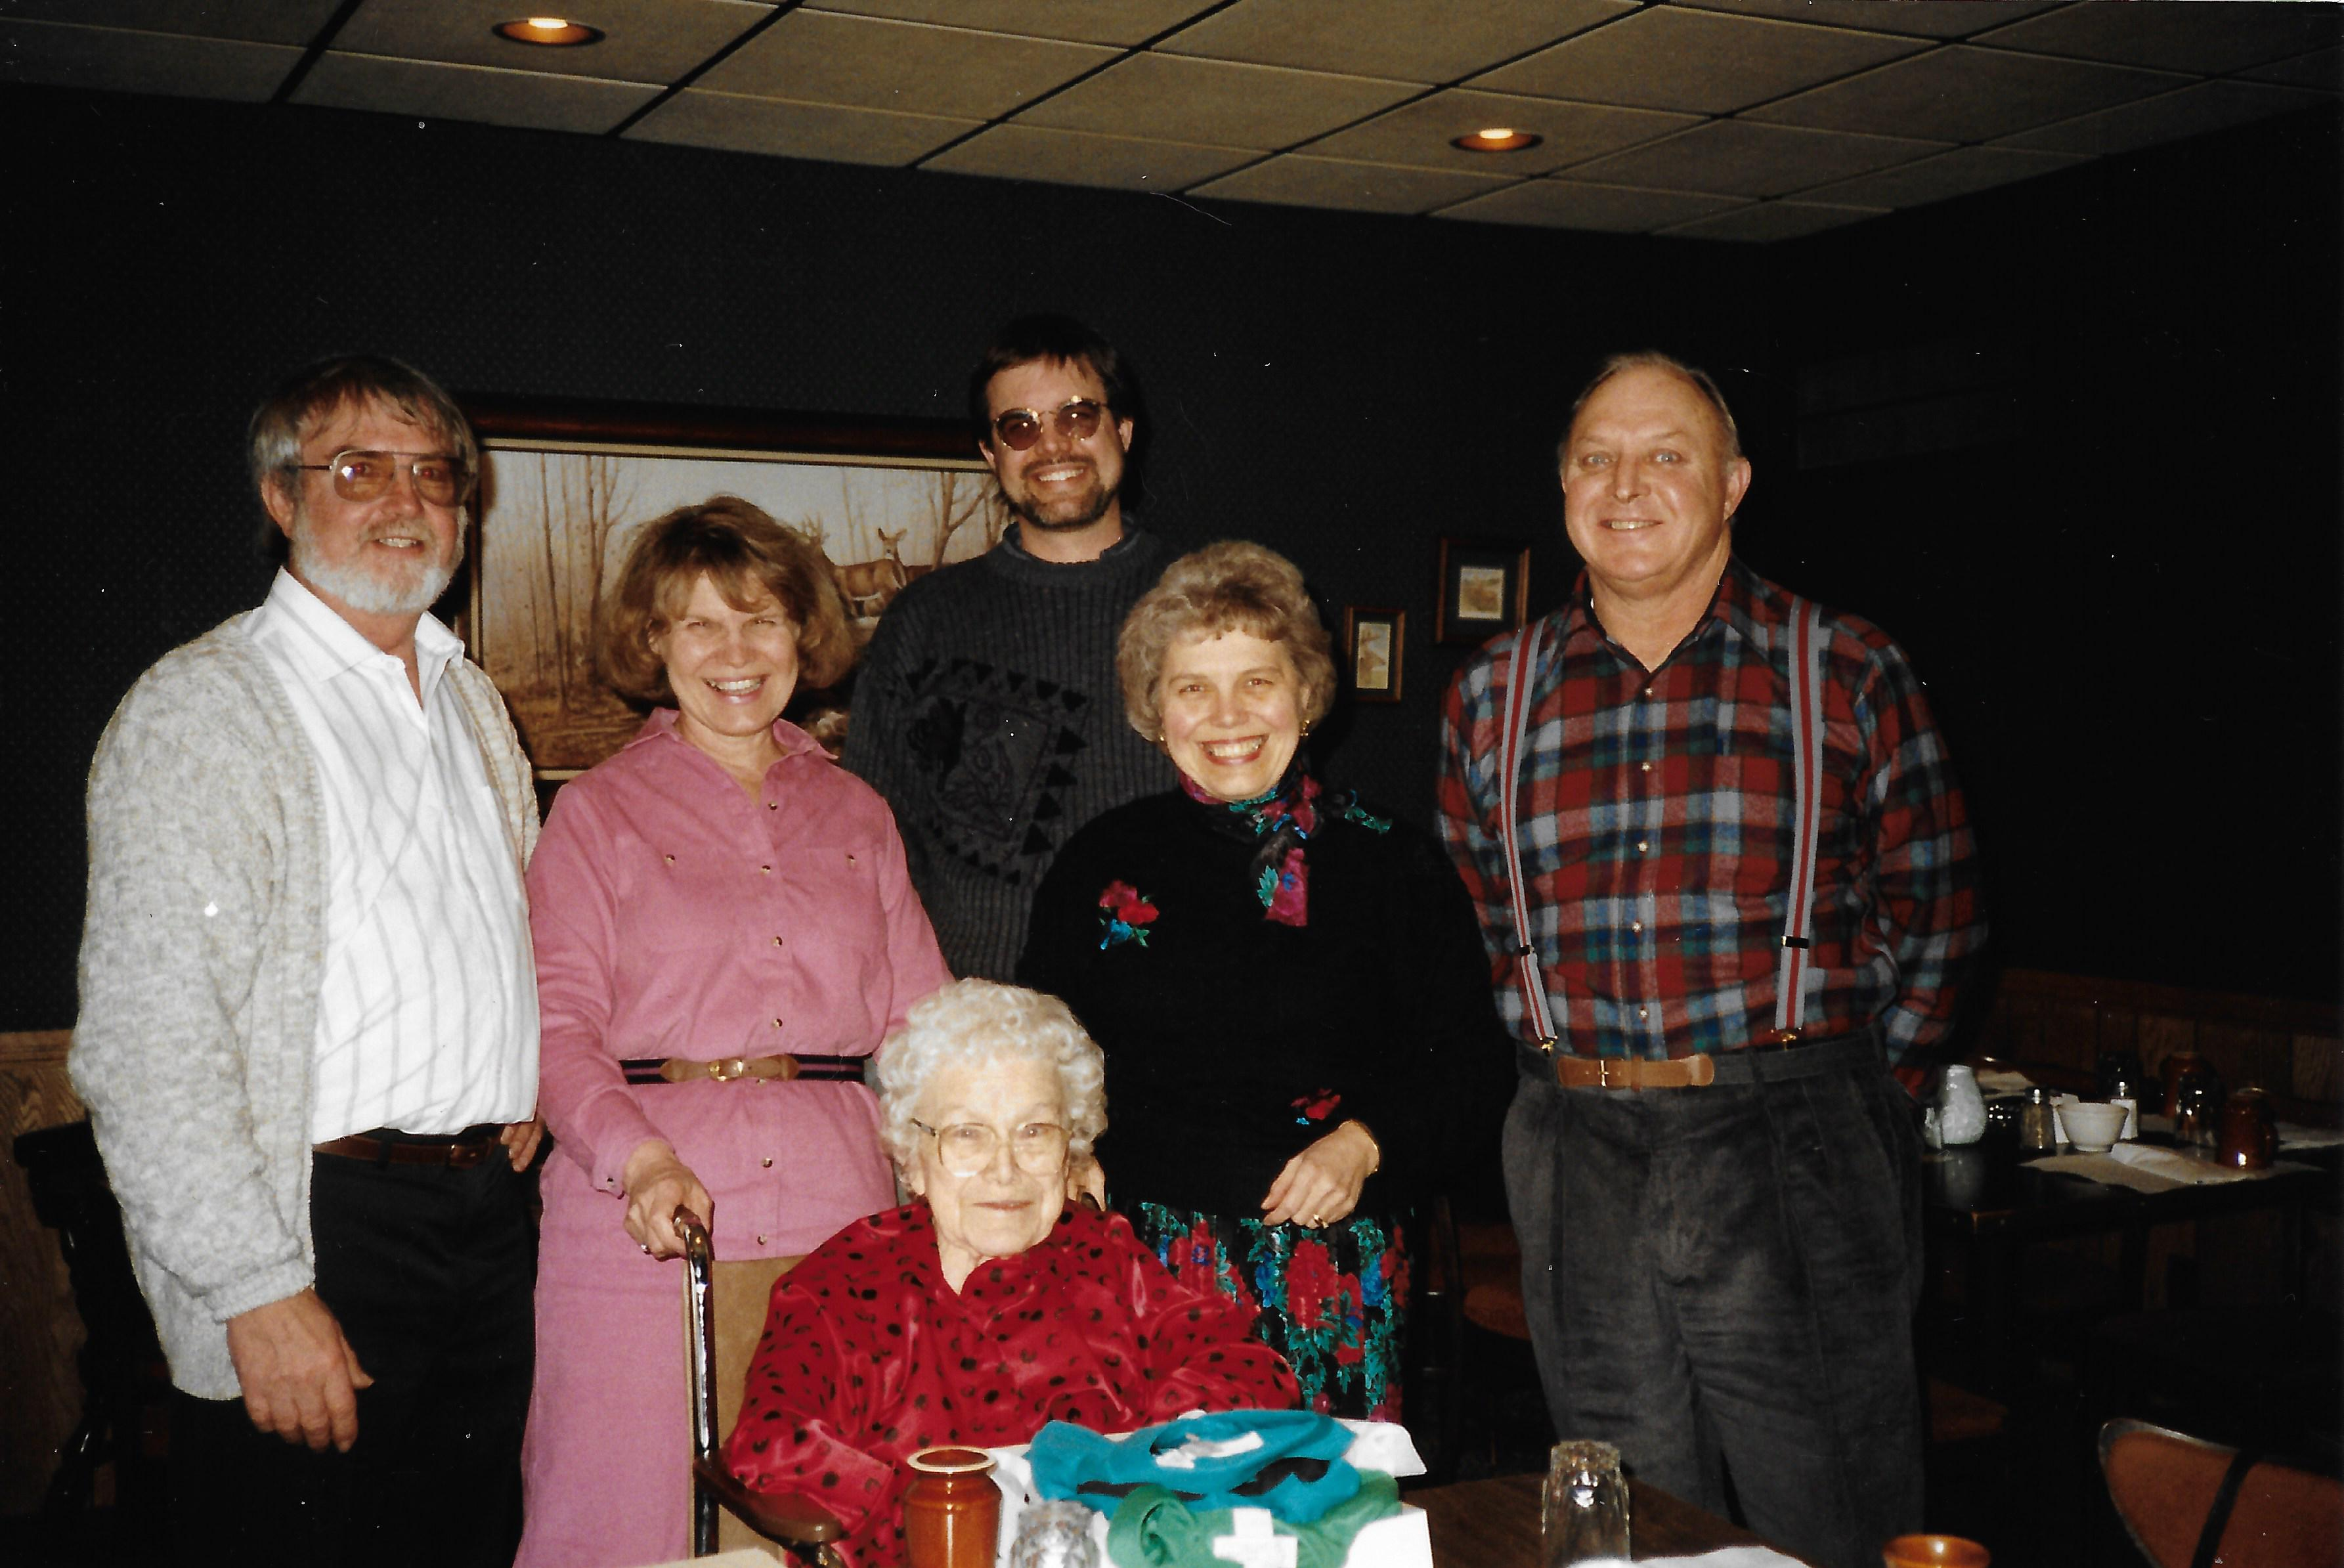 Lorain Berg, Julia Berg, Steven Berg, Rita Liberacki, and John Luks help Rachel Wilcox (seated) enjoy her 82nd birthday.